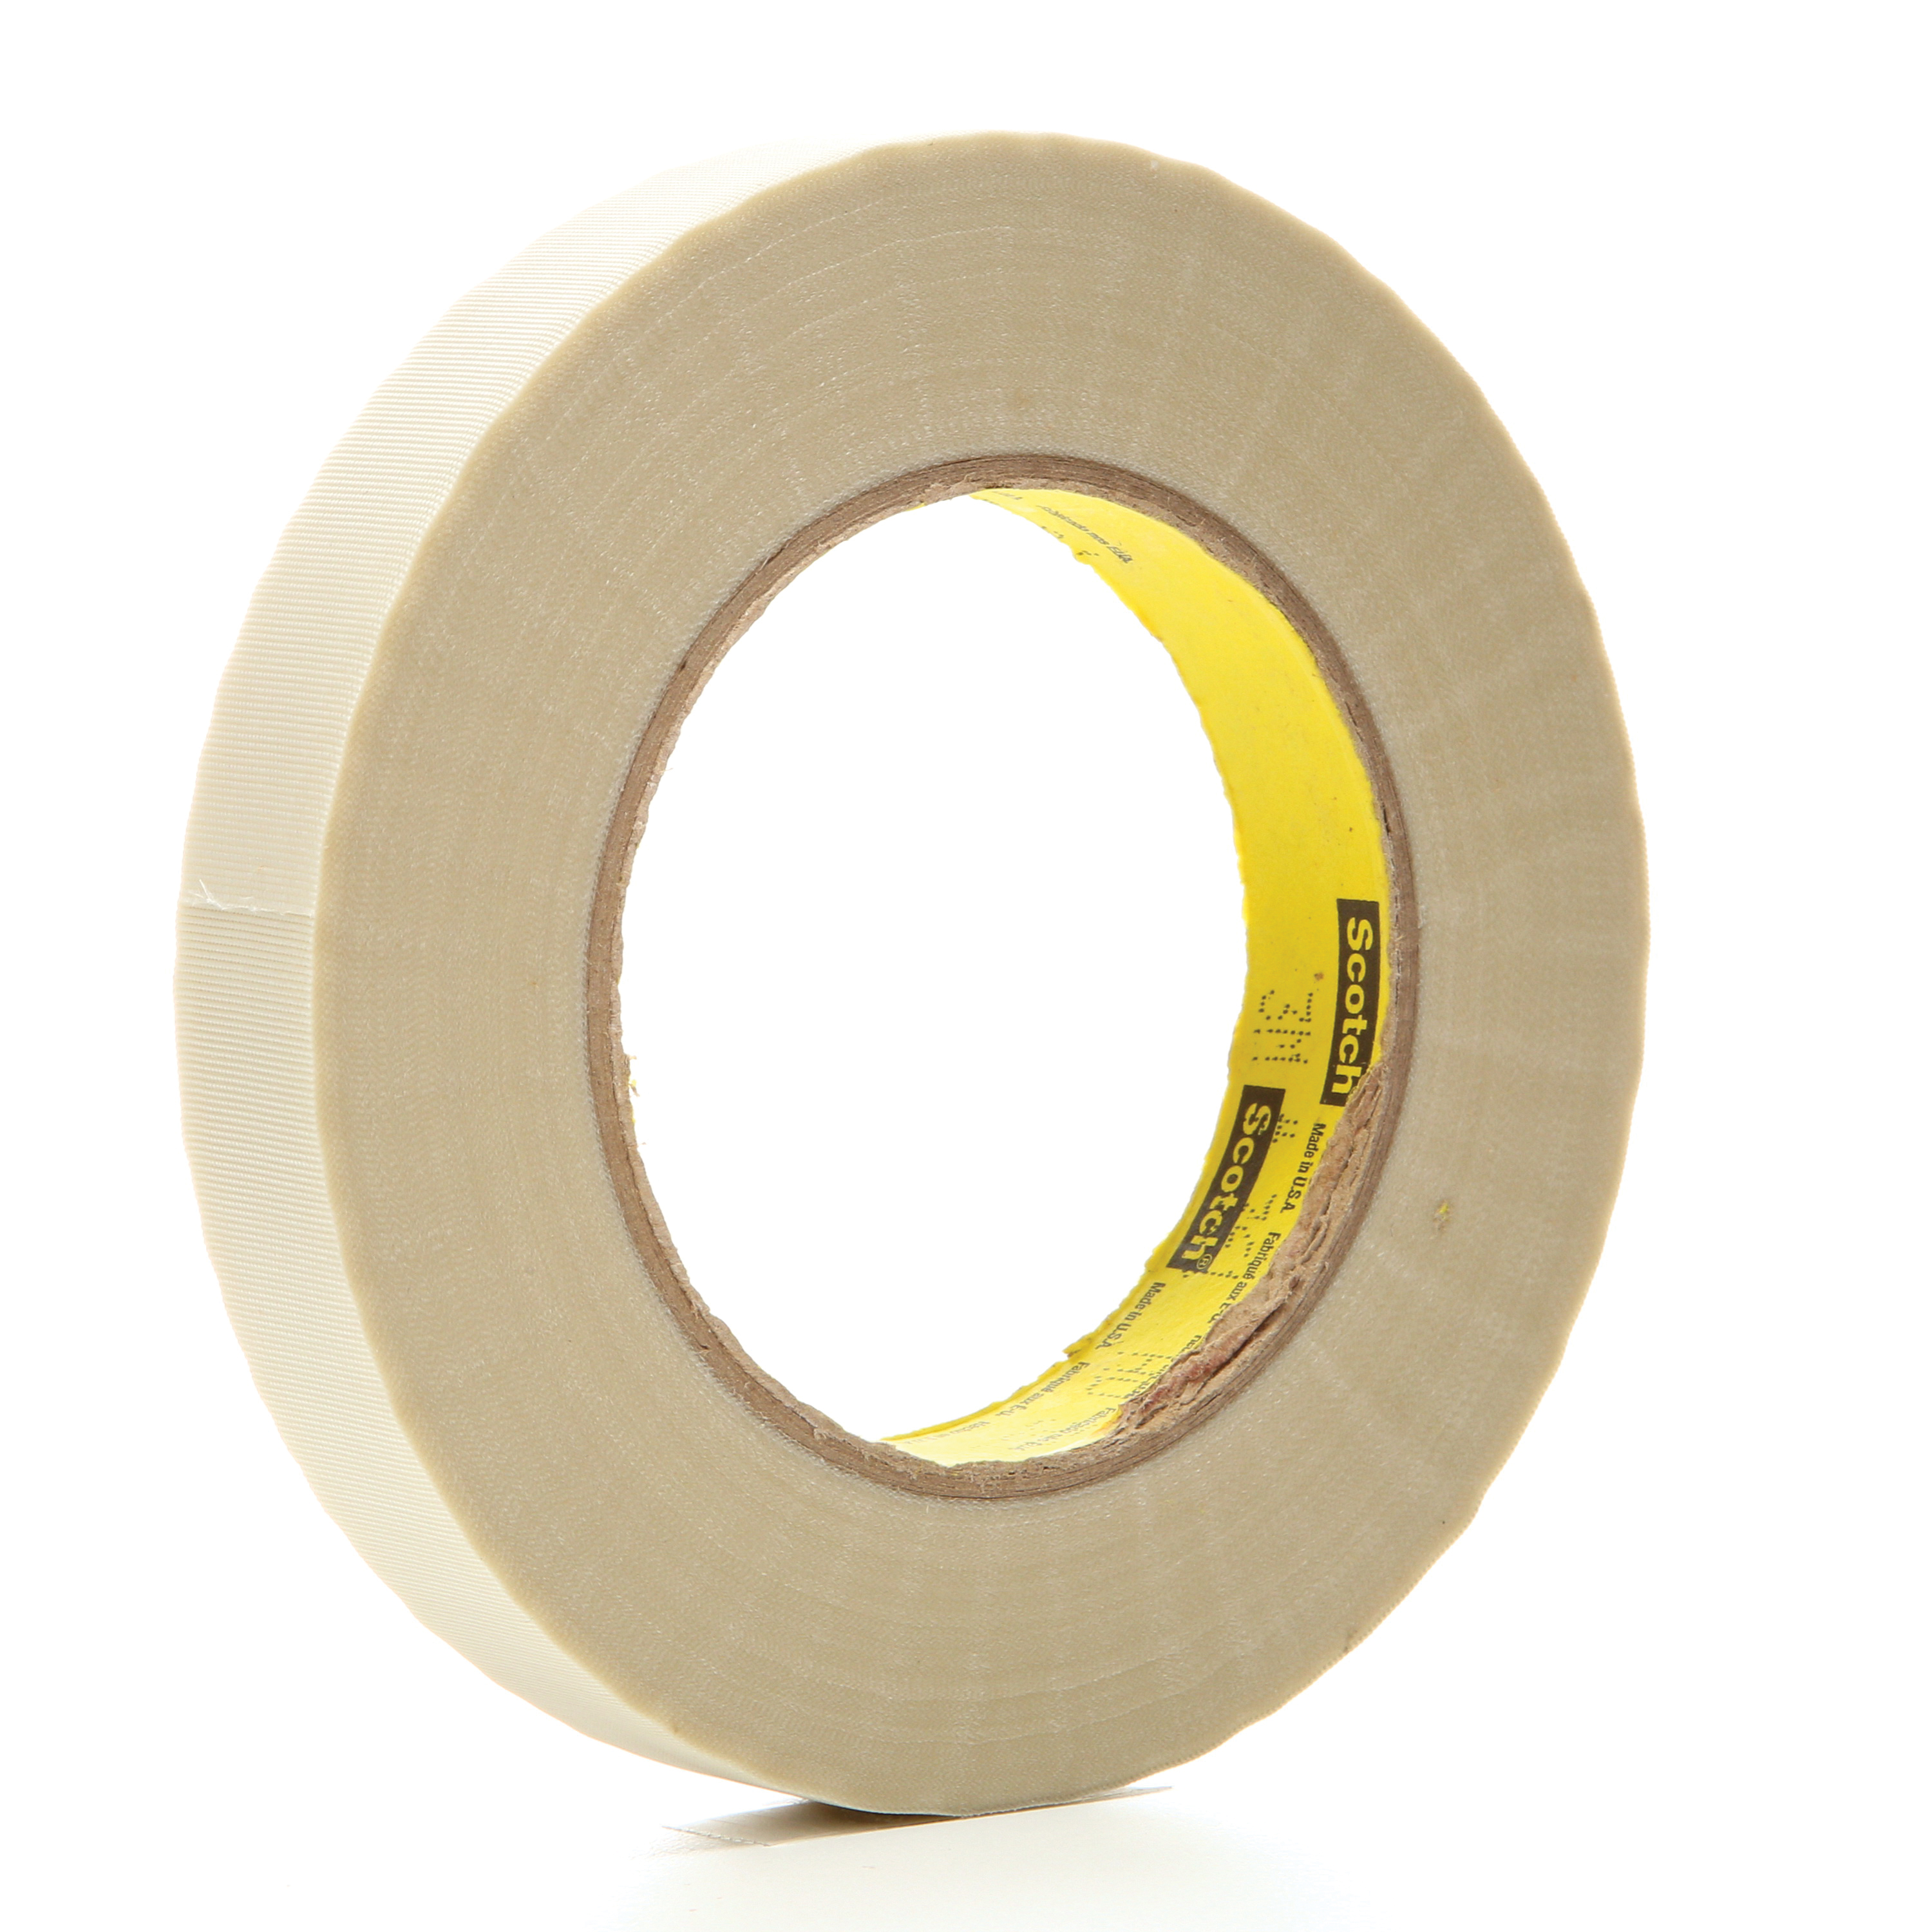 3M™ 021200-03016 Cloth Tape, 60 yd L x 3/4 in W, 6.4 mil THK, Silicone Adhesive, Glass Cloth Backing, White